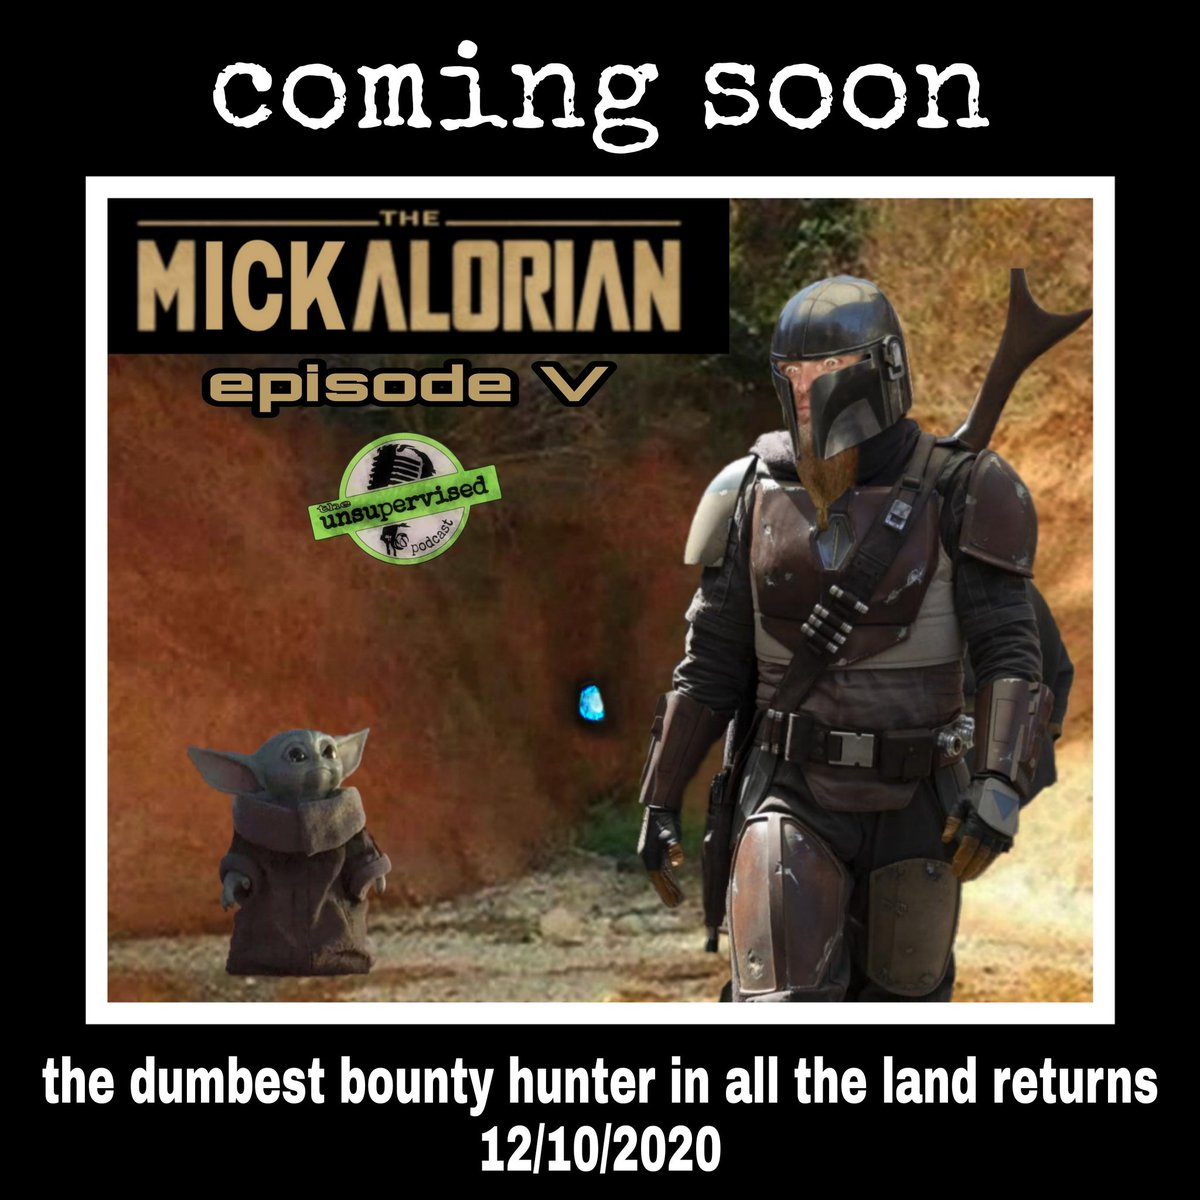 Mickdo & Baby Yoda return next month for a mini series like no other...  #BabyYoda #parody #comedy #podcast #podcasts #podcasters  https://t.co/mMTuupV2Fa https://t.co/DAxV4YwOHp